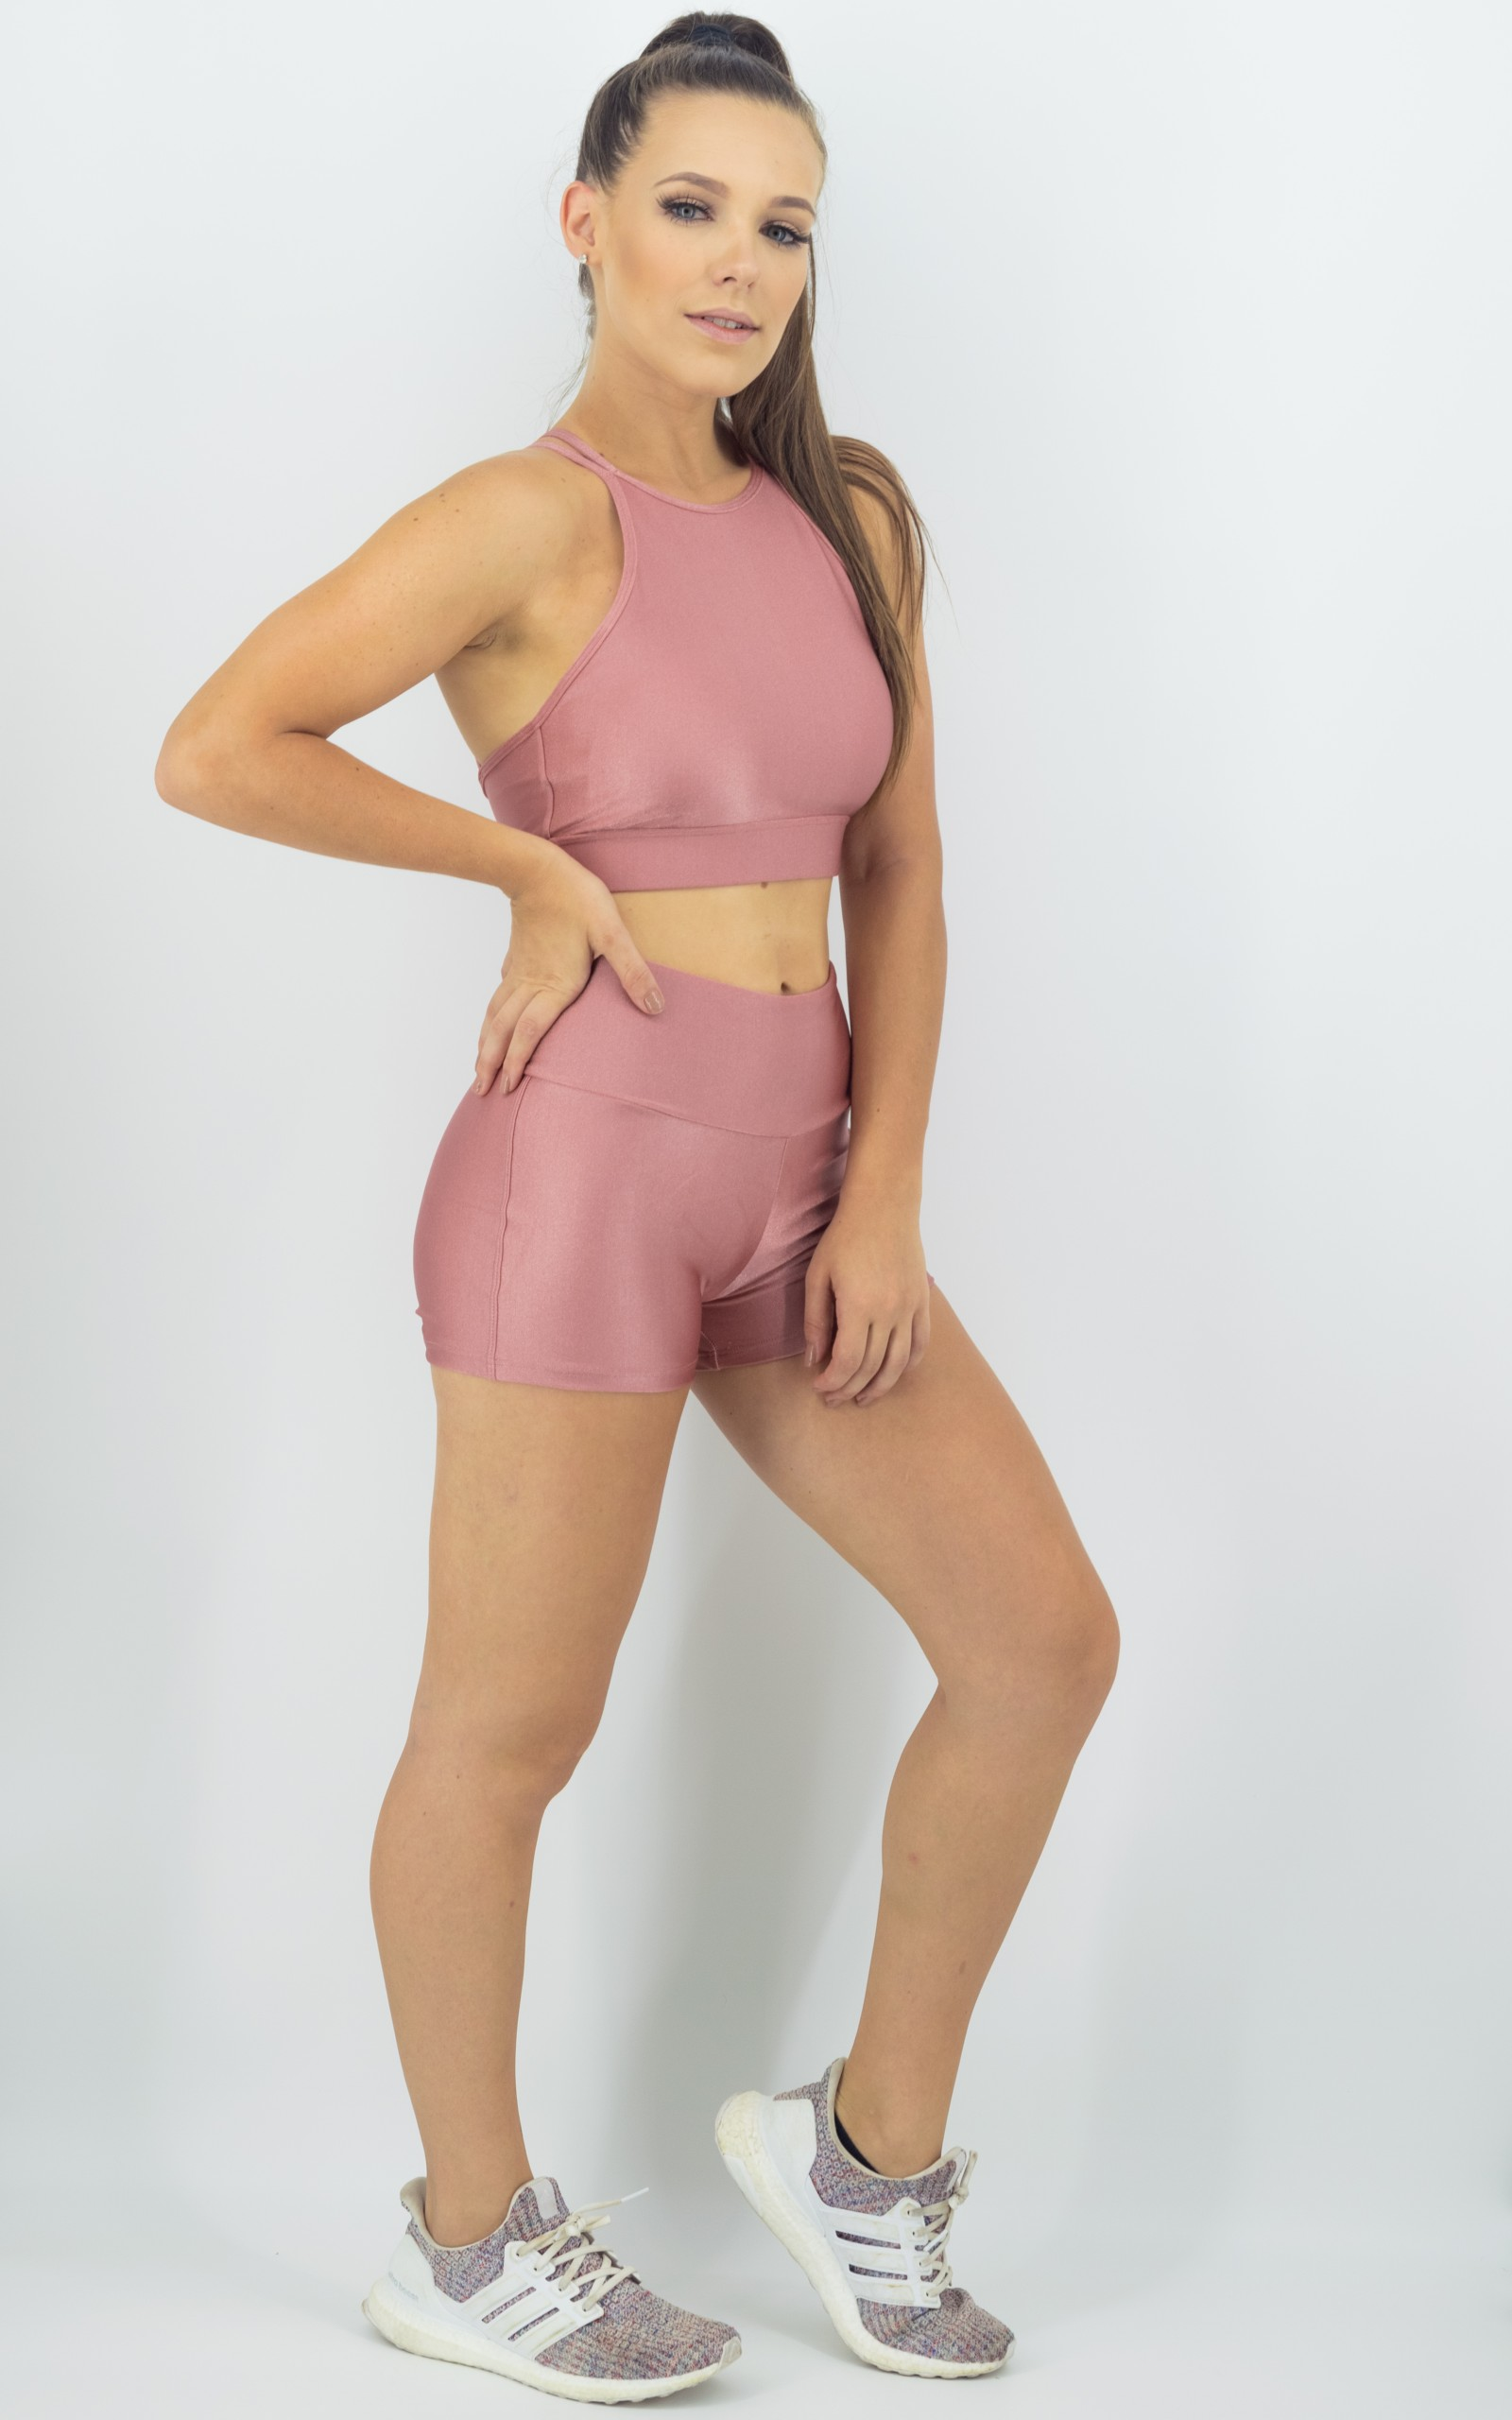 Cropped Absolute Rosa Boca, Coleção Move Your Body - NKT Fitwear Moda Fitness